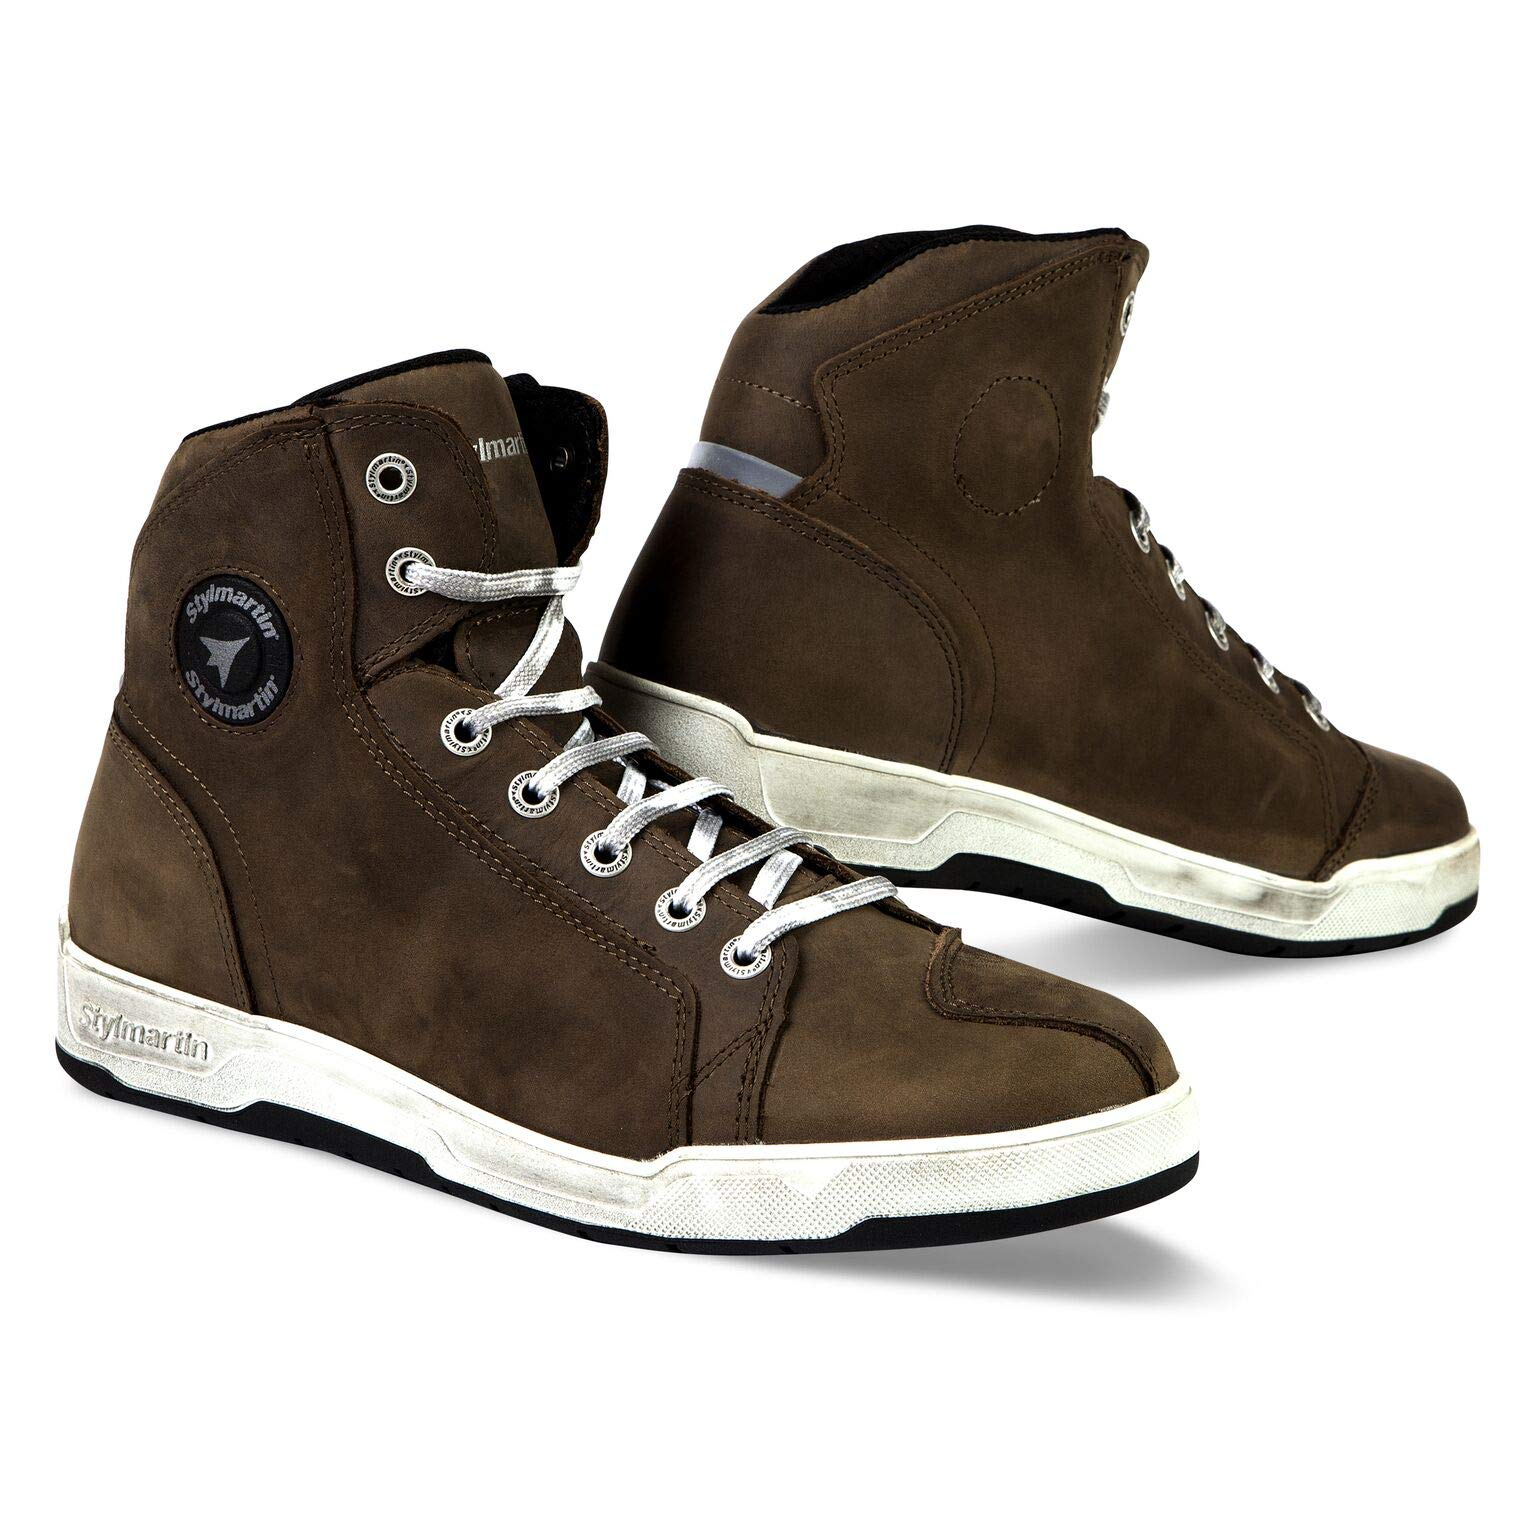 Stylmartin Adult Marshall Urban Line Sneakers Brown Size: US-11, EU-44 by Stylmartin